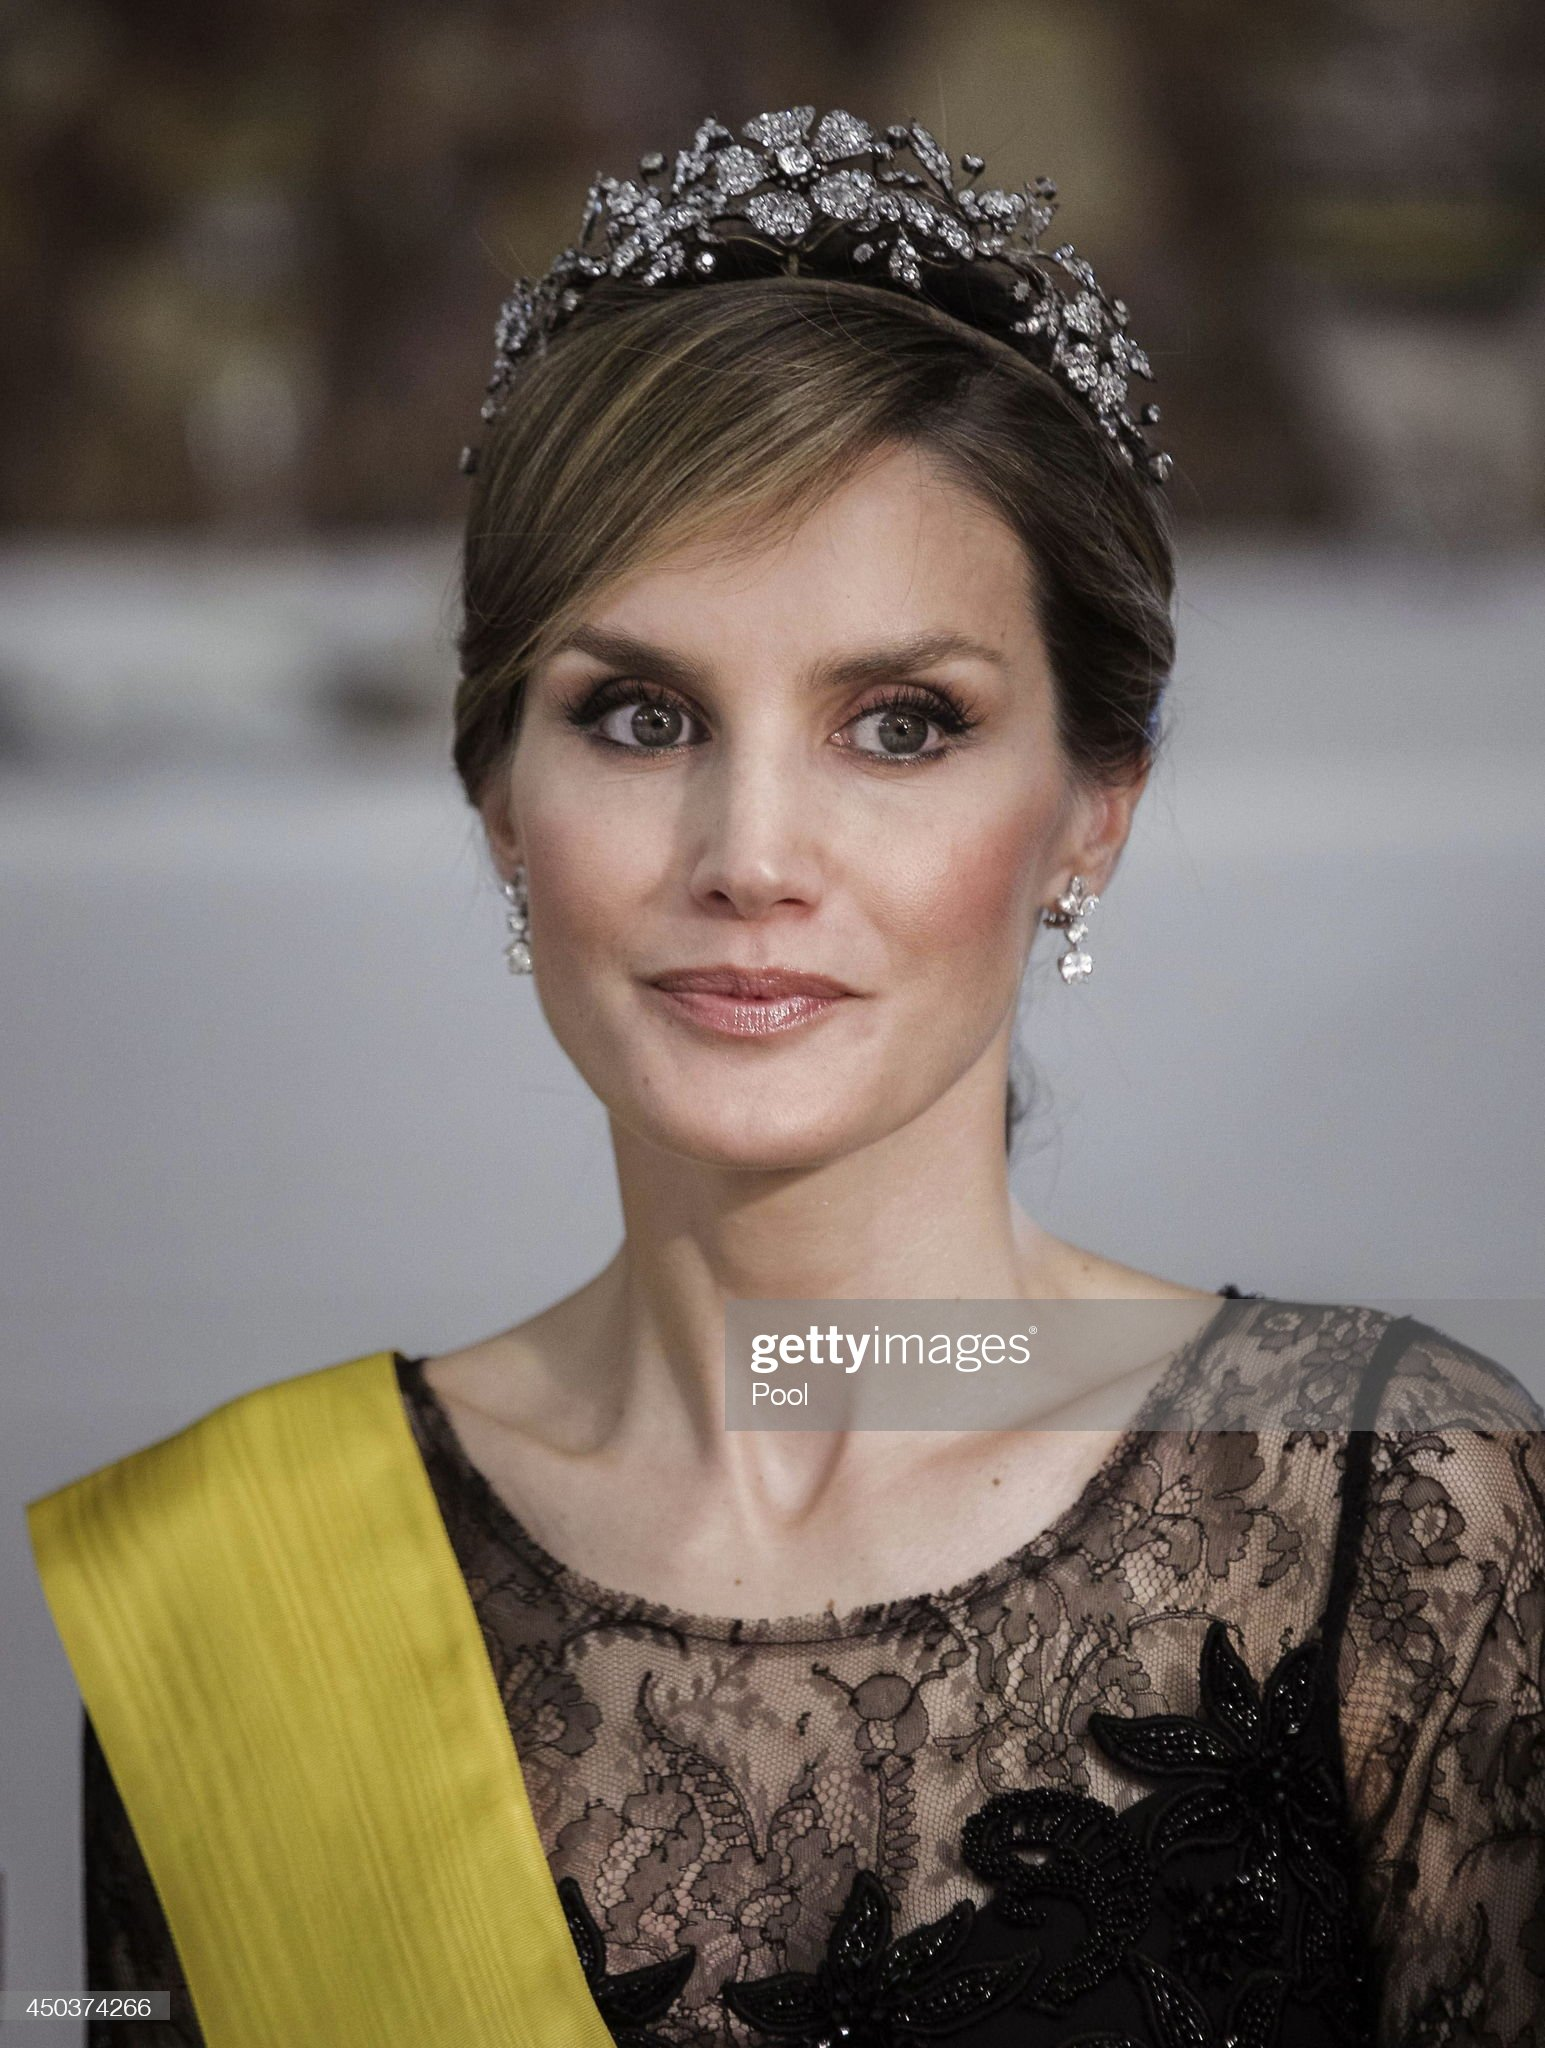 Вечерние наряды Королевы Летиции Spanish Royals Host a Dinner With President of Mexico and His Wife : News Photo